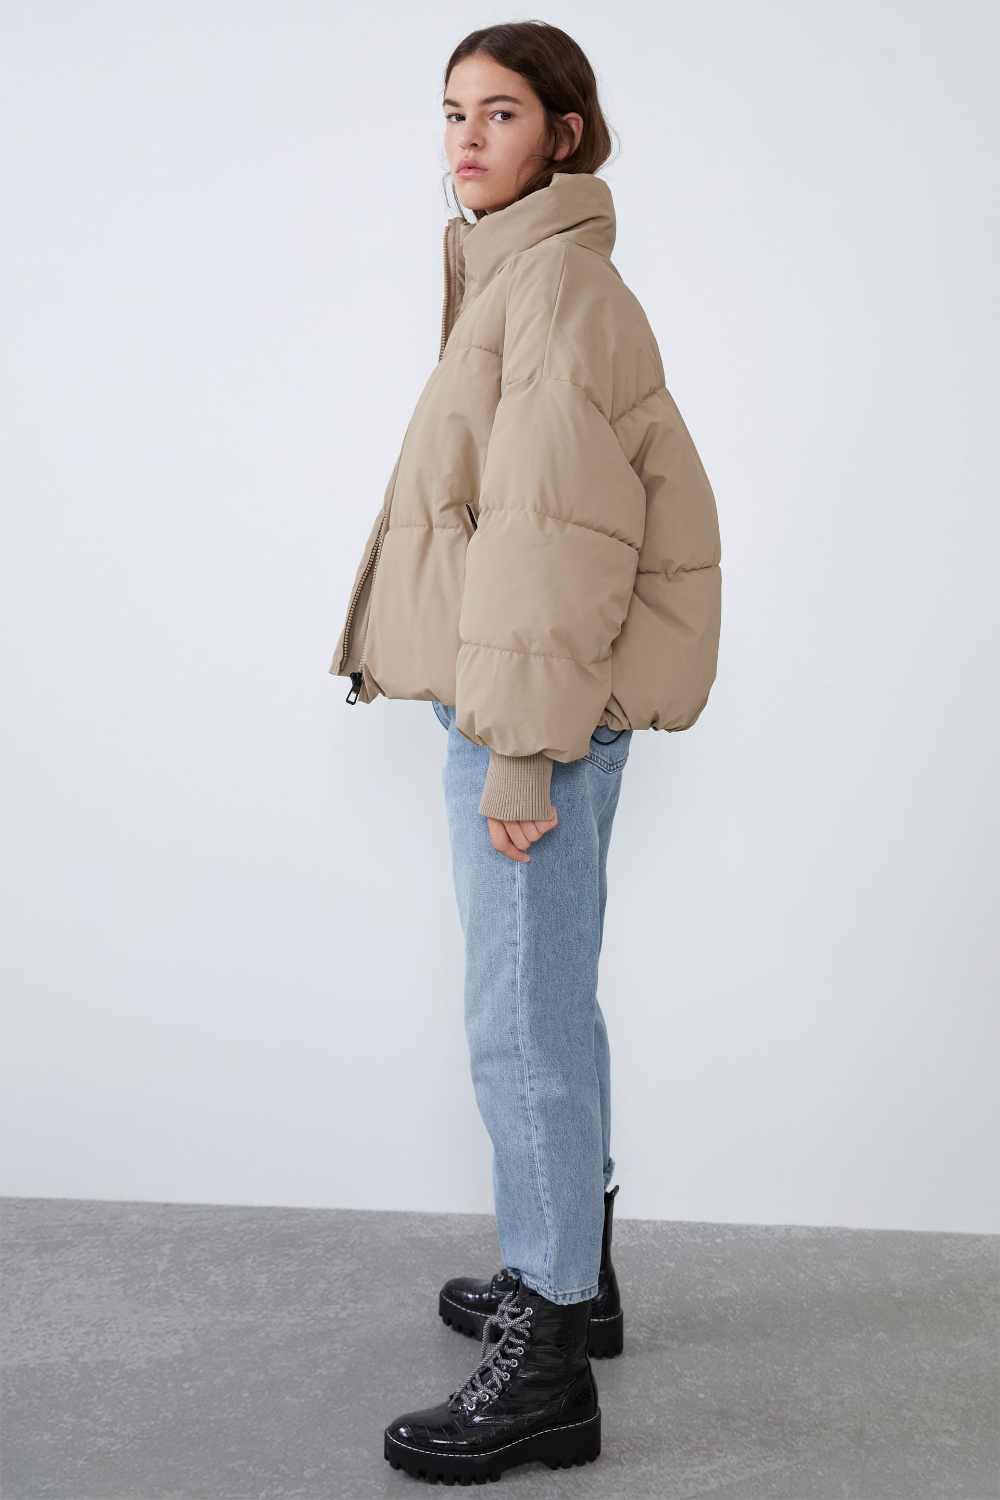 Oversized Puffer Jacket Zara United States Casual Winter Outfits Winter Fashion Outfits Winter Outfits [ 1500 x 1000 Pixel ]